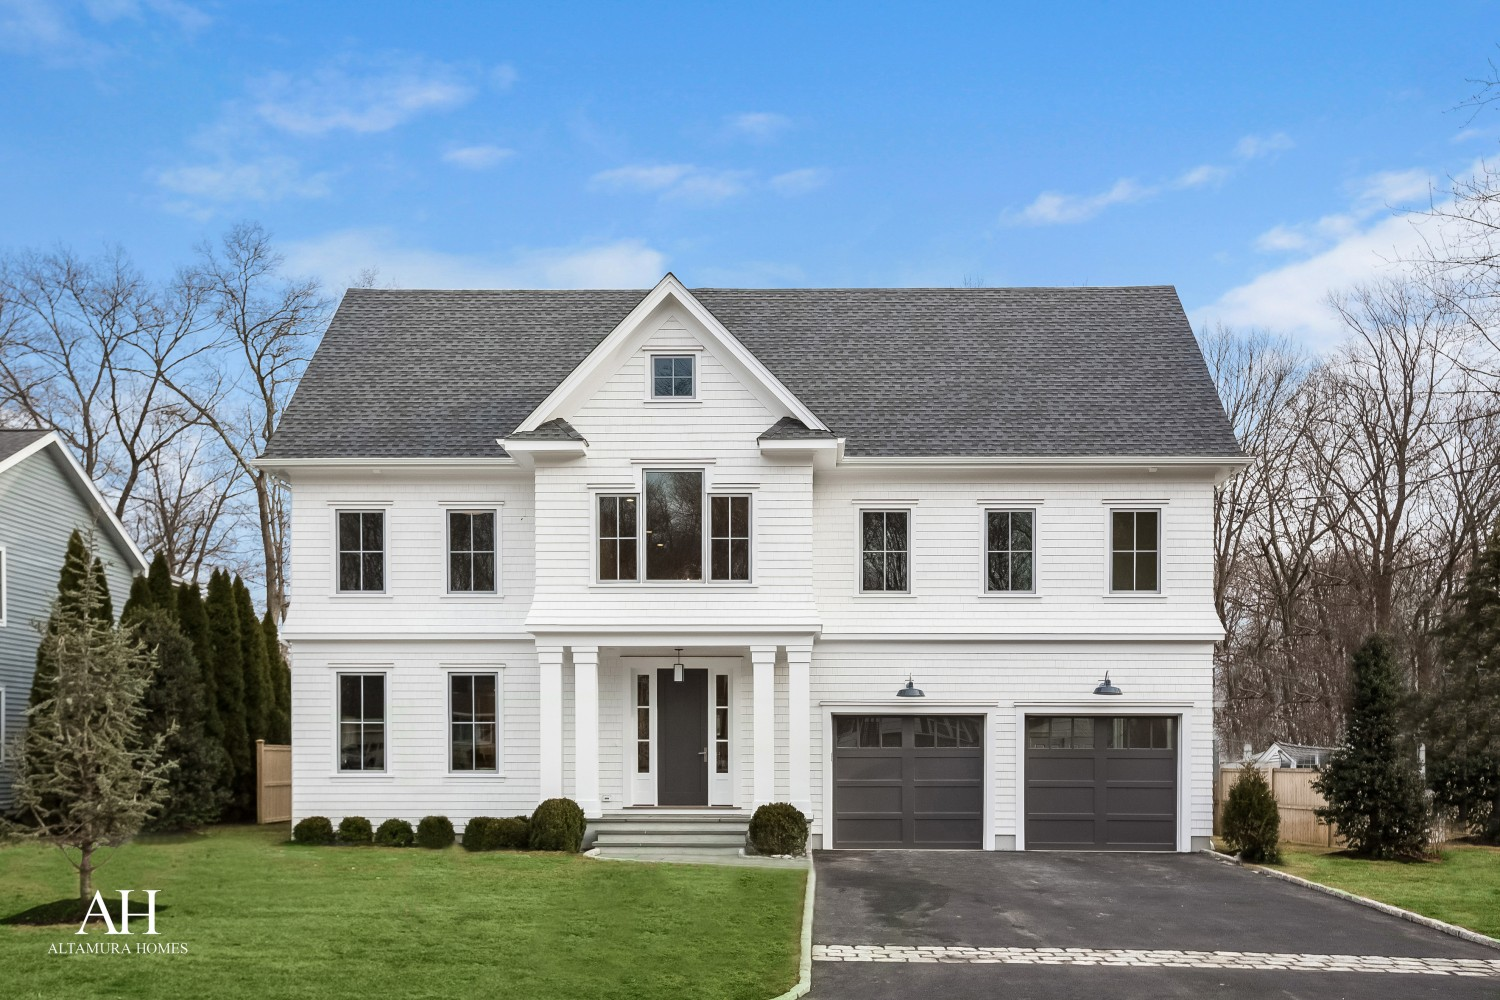 Gallery | Altamura Homes | Stamford CT